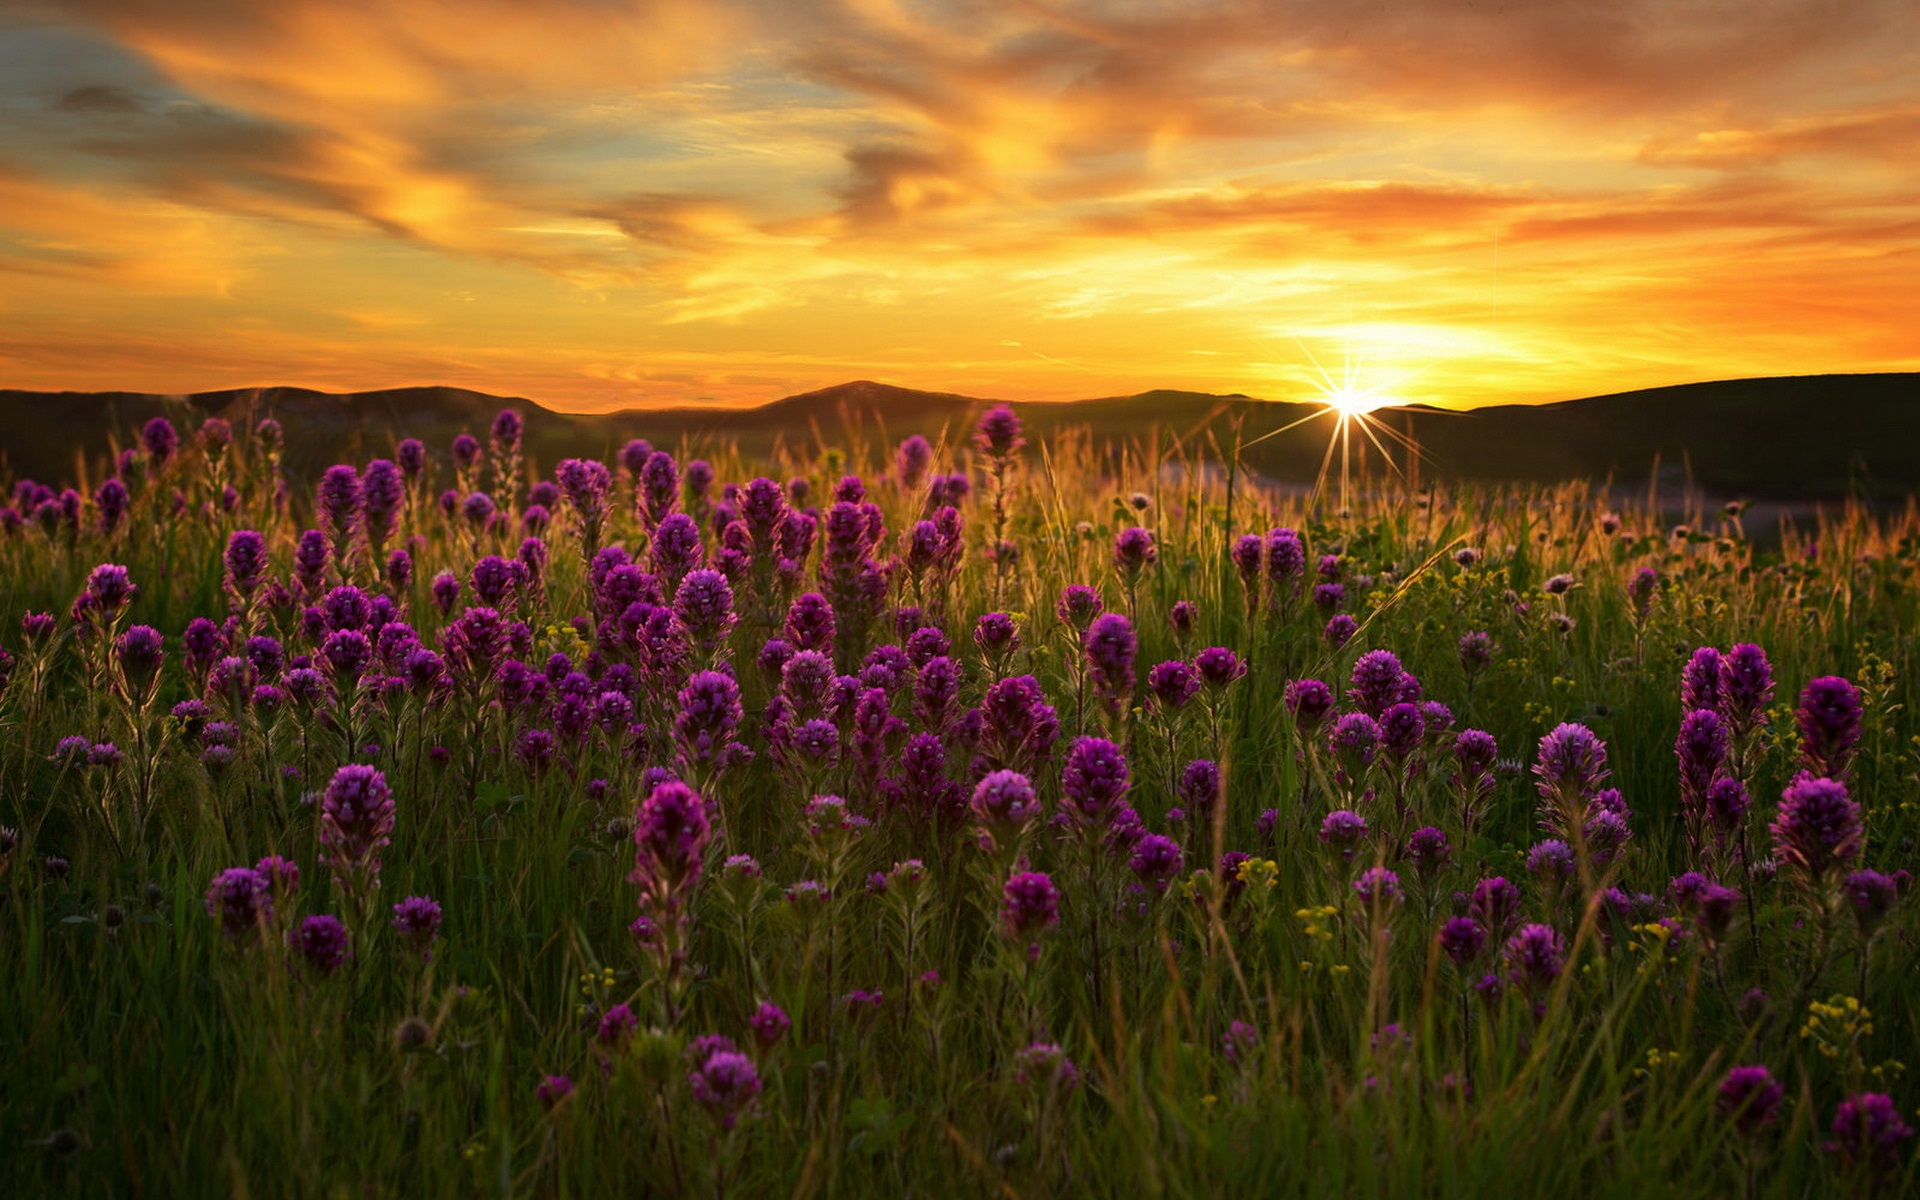 Wallpaper Purple Flowers Field Grass Sunset 1920x1200 Hd Picture Image